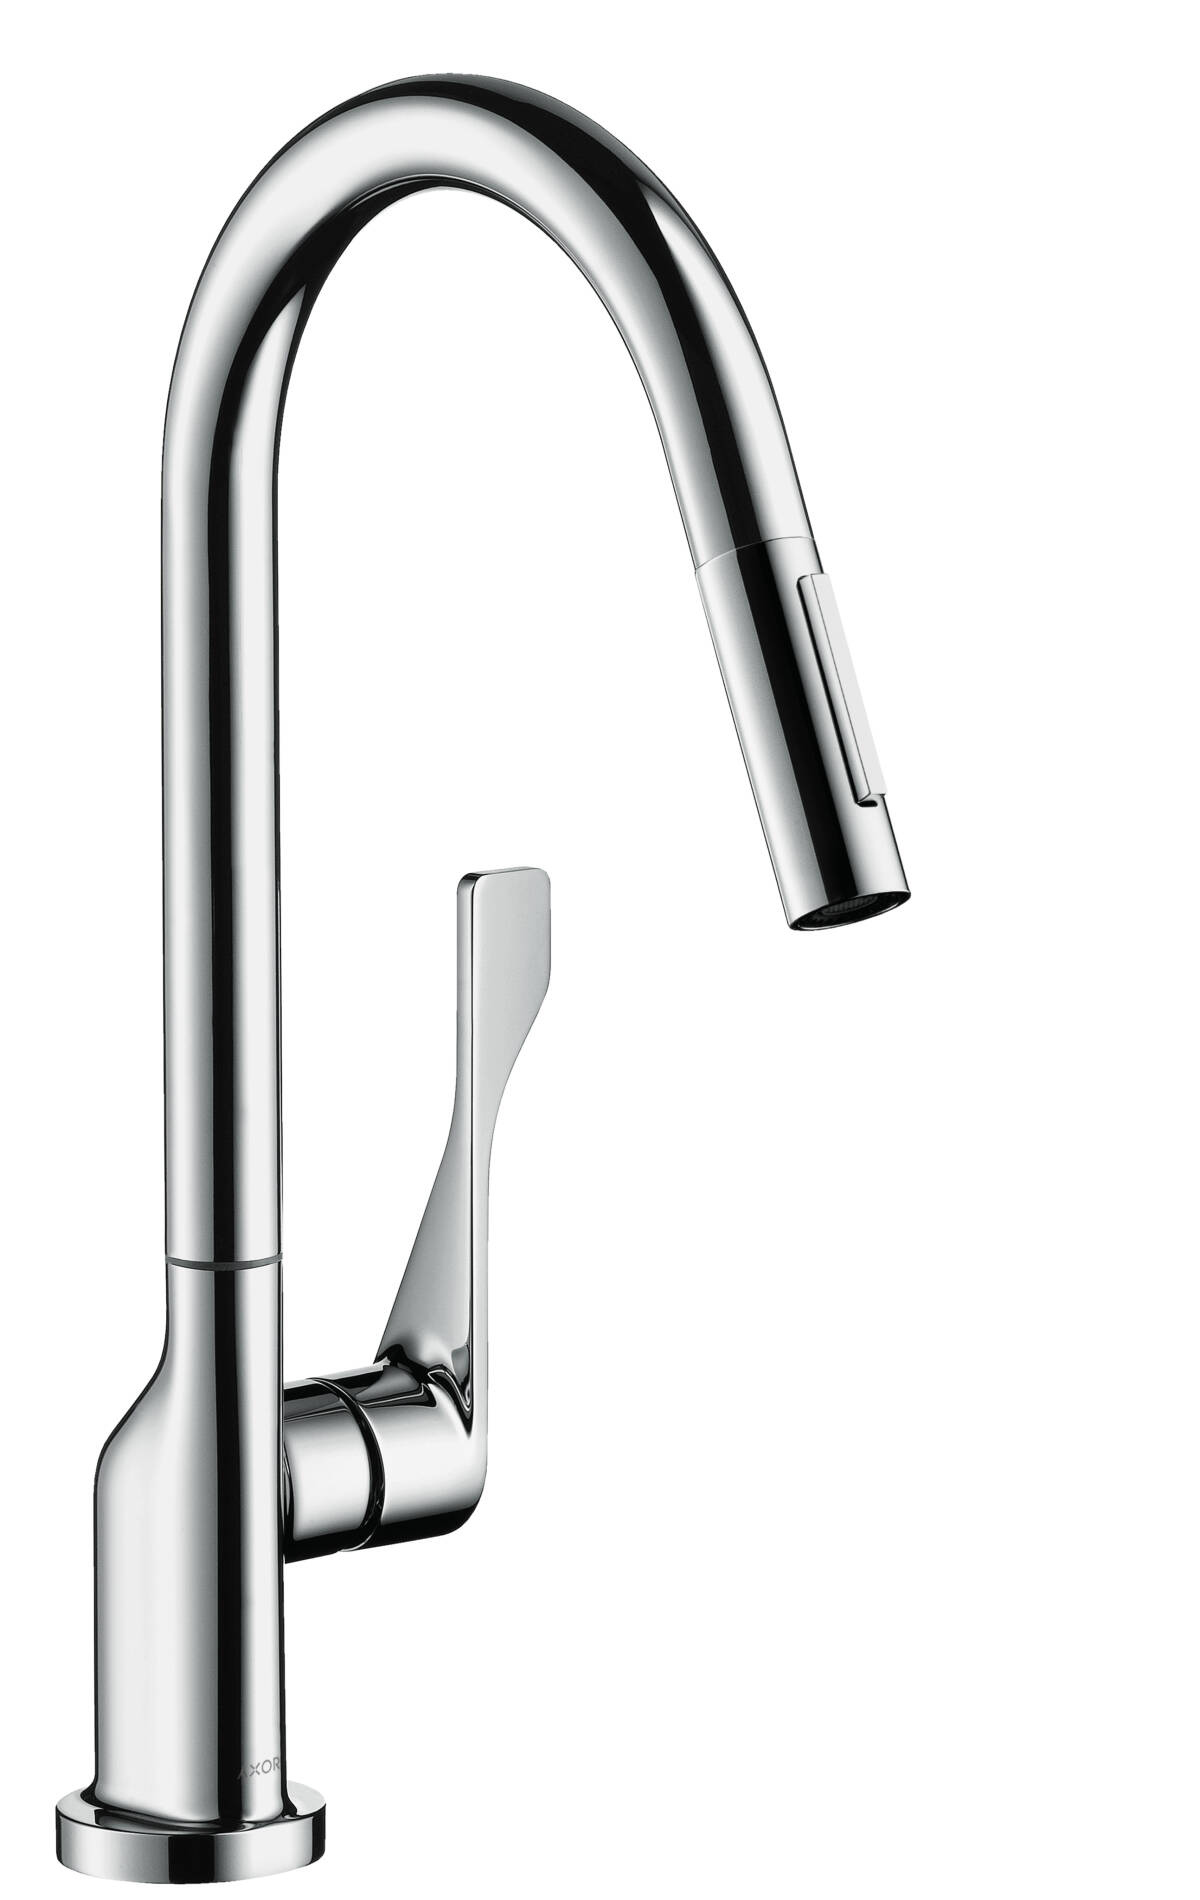 Single lever kitchen mixer 250 with pull-out spray, Brushed Chrome, 39835260